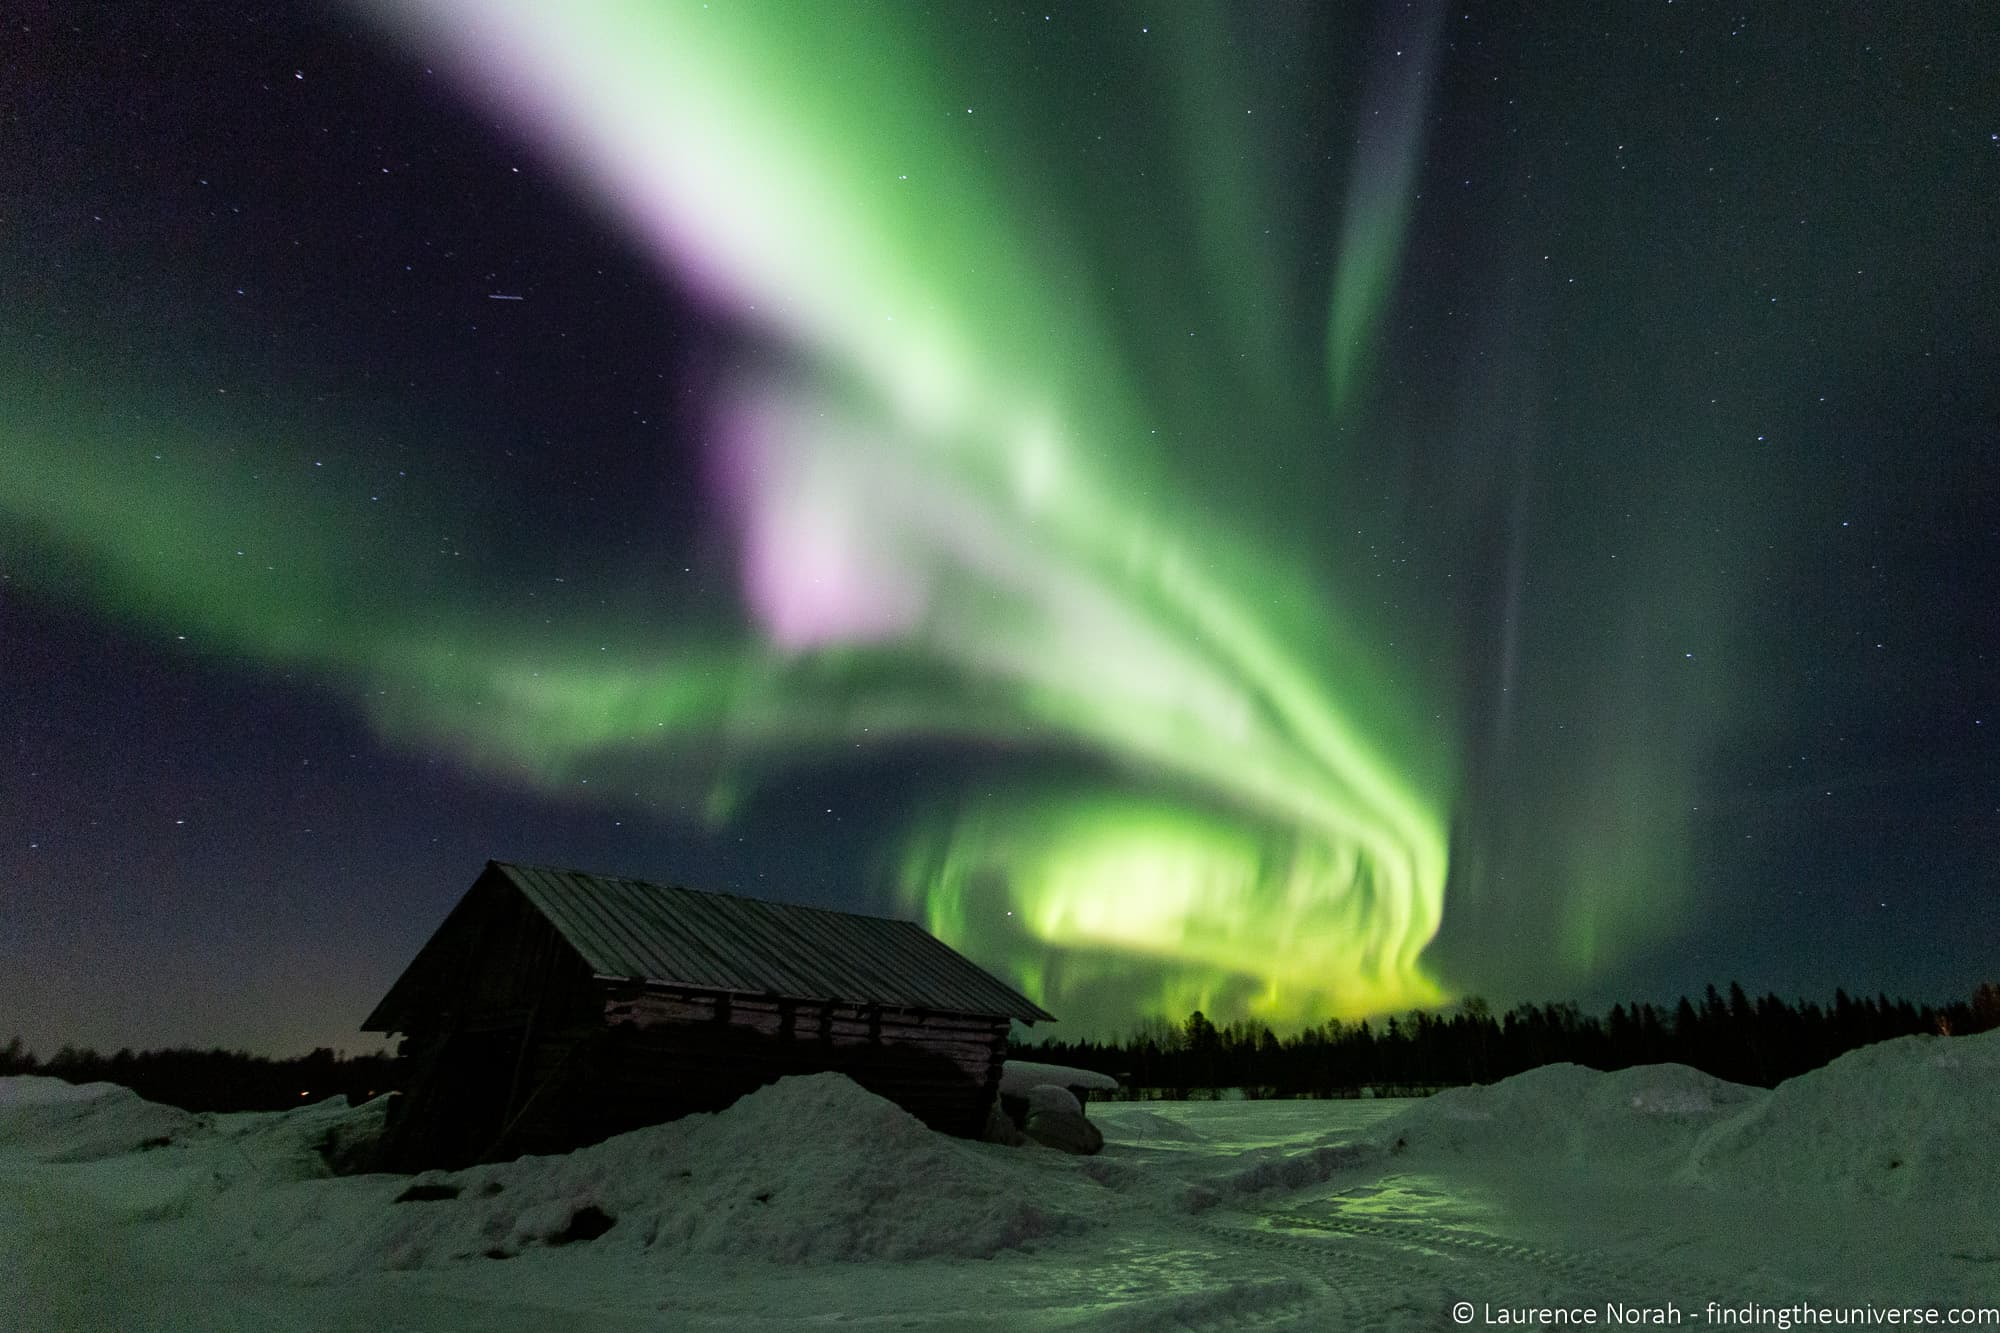 How to Photograph the Northern Lights - Finding the Universe